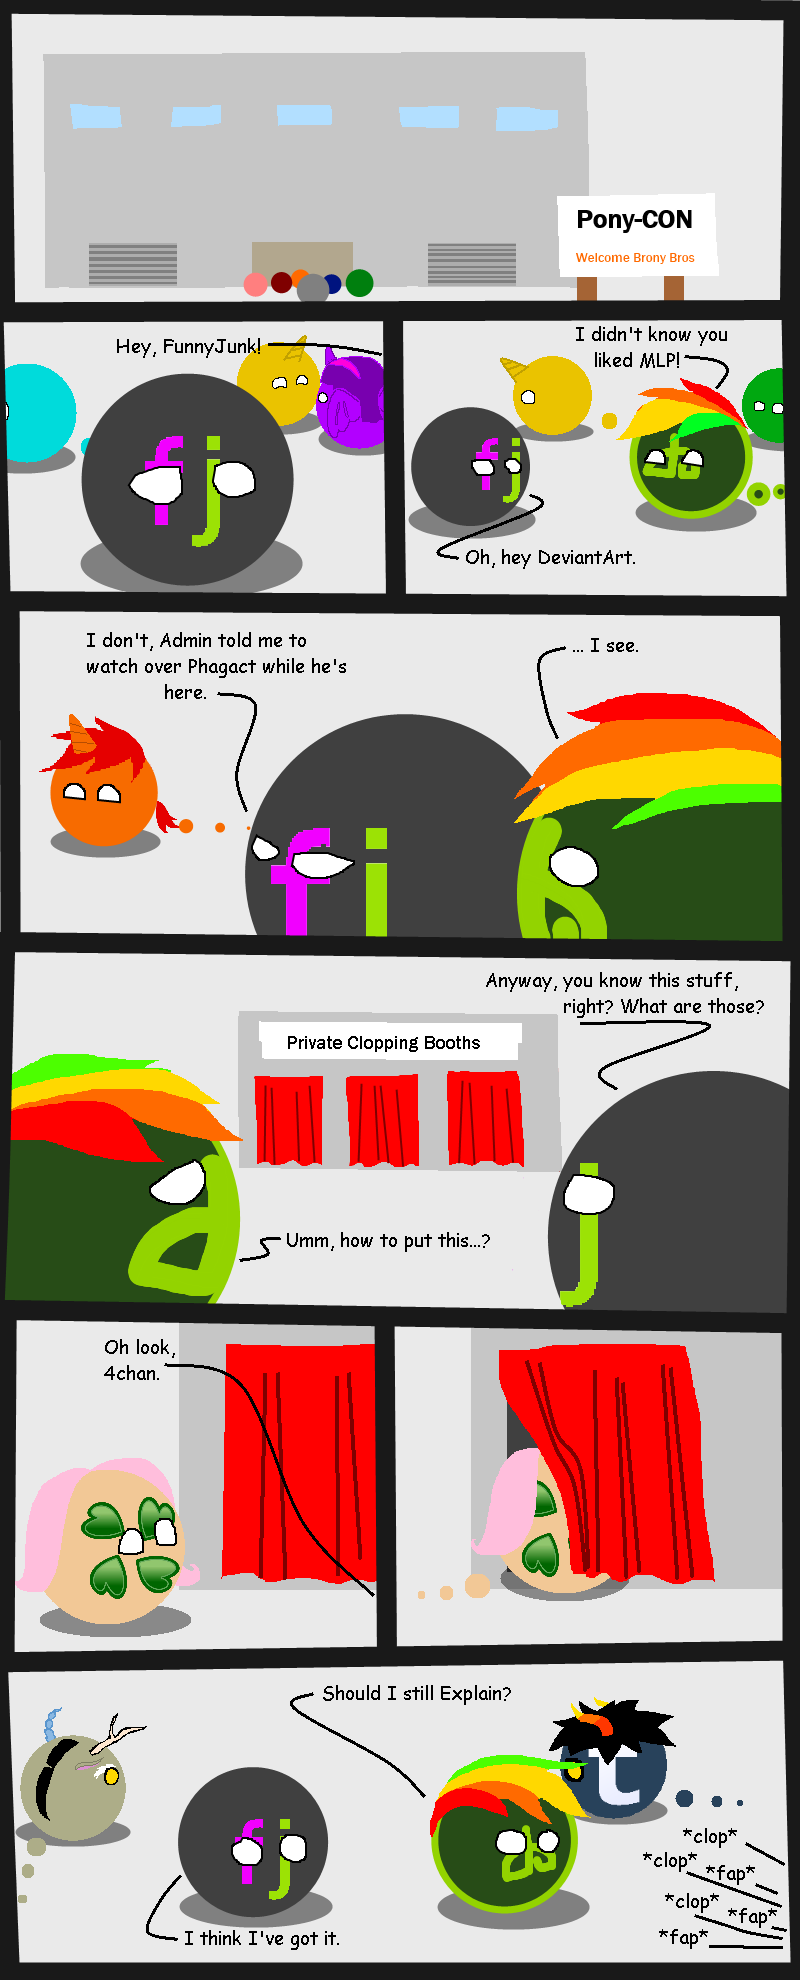 Unconventional. Today, FunnyJunk is at a convention and runs into a friend. The conversation quickly takes an awkward turn.... I didn' t know you Oh, hey Devian